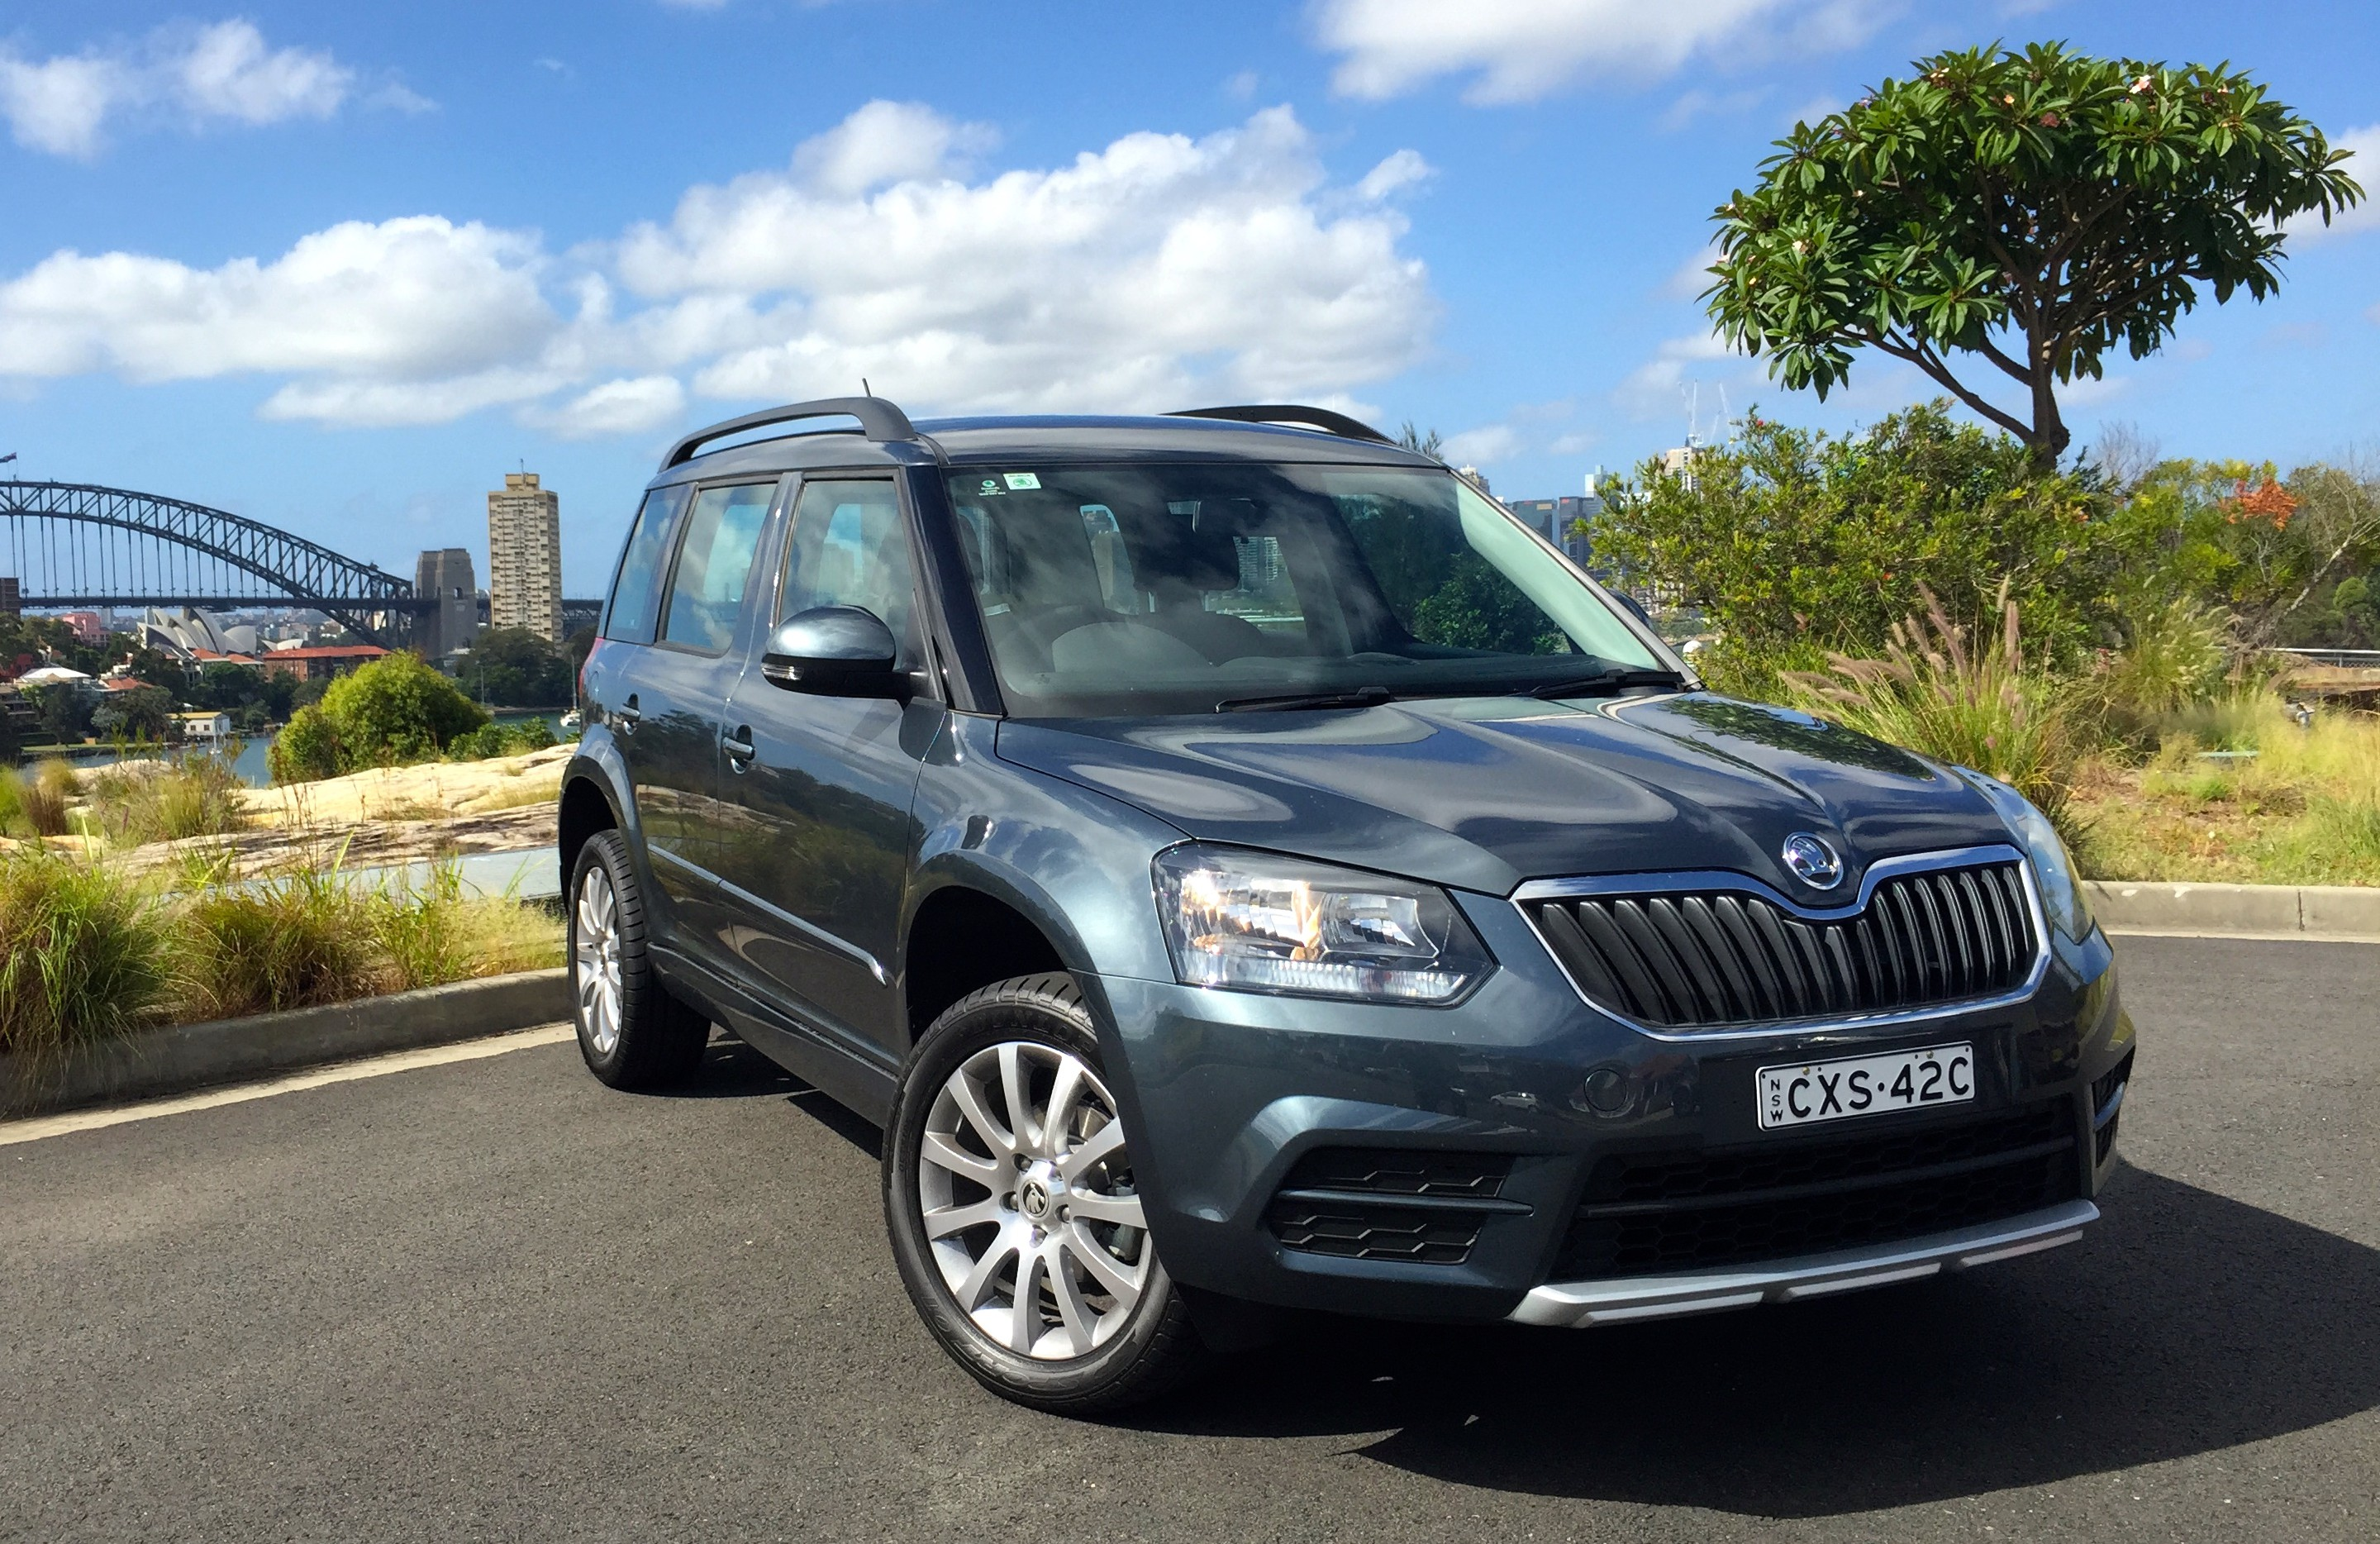 2015 skoda yeti 77tsi active review caradvice. Black Bedroom Furniture Sets. Home Design Ideas